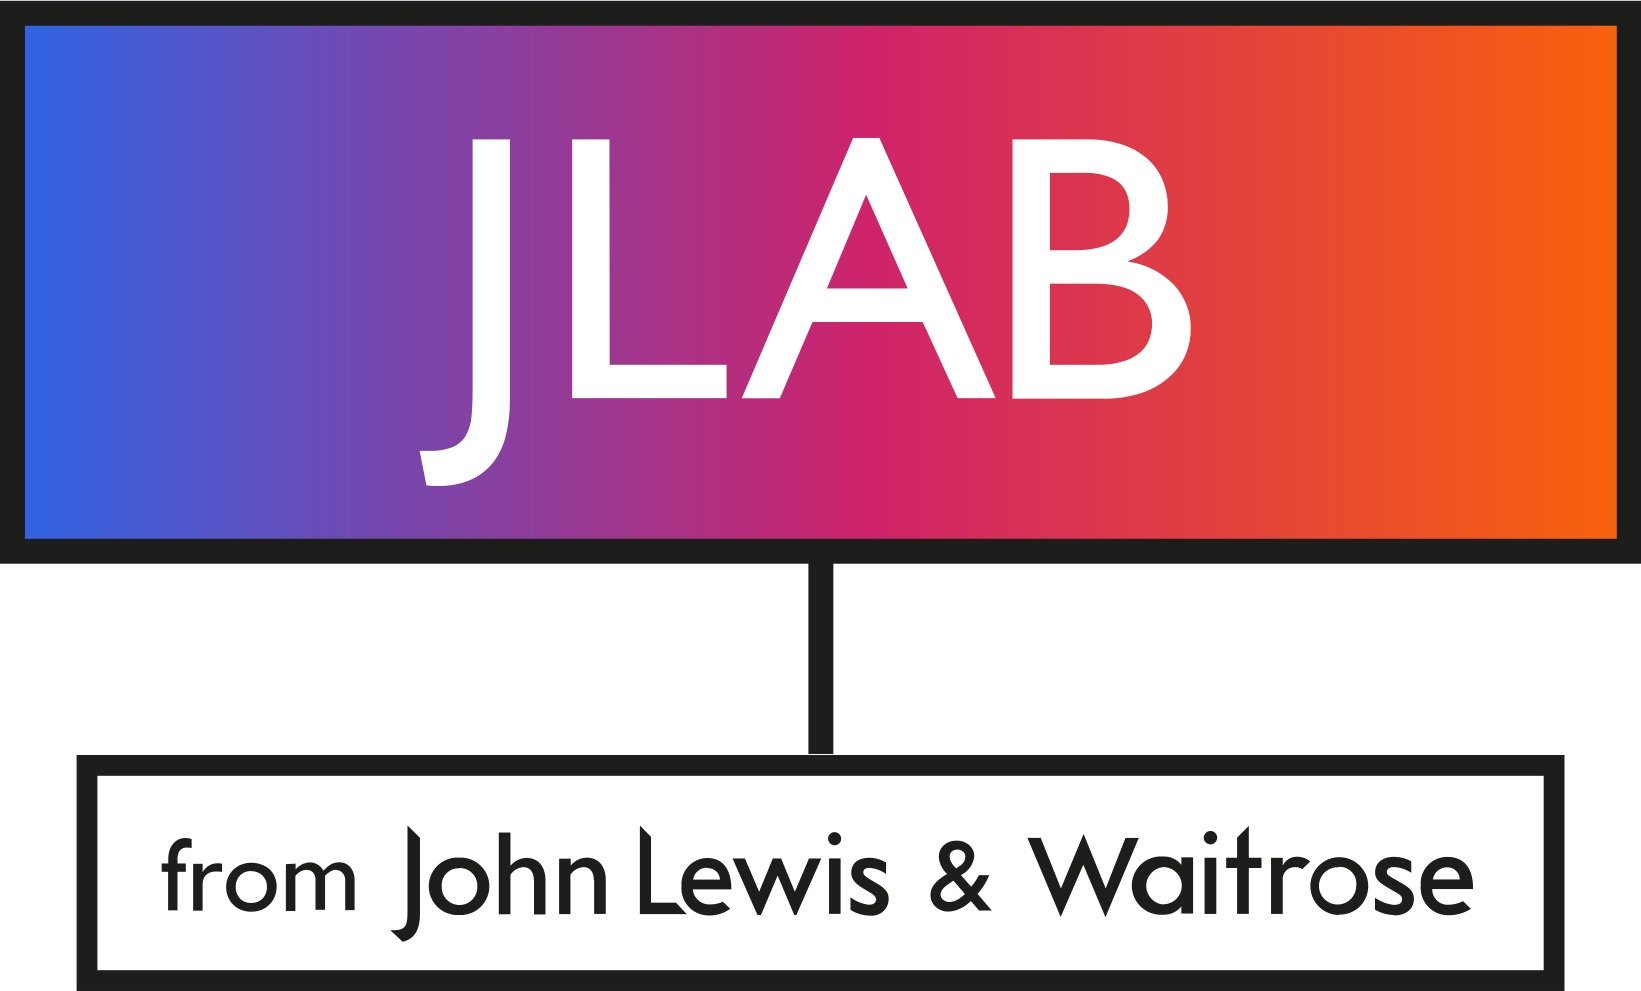 JLAB from John Lewis seeks retail startups for collaboration